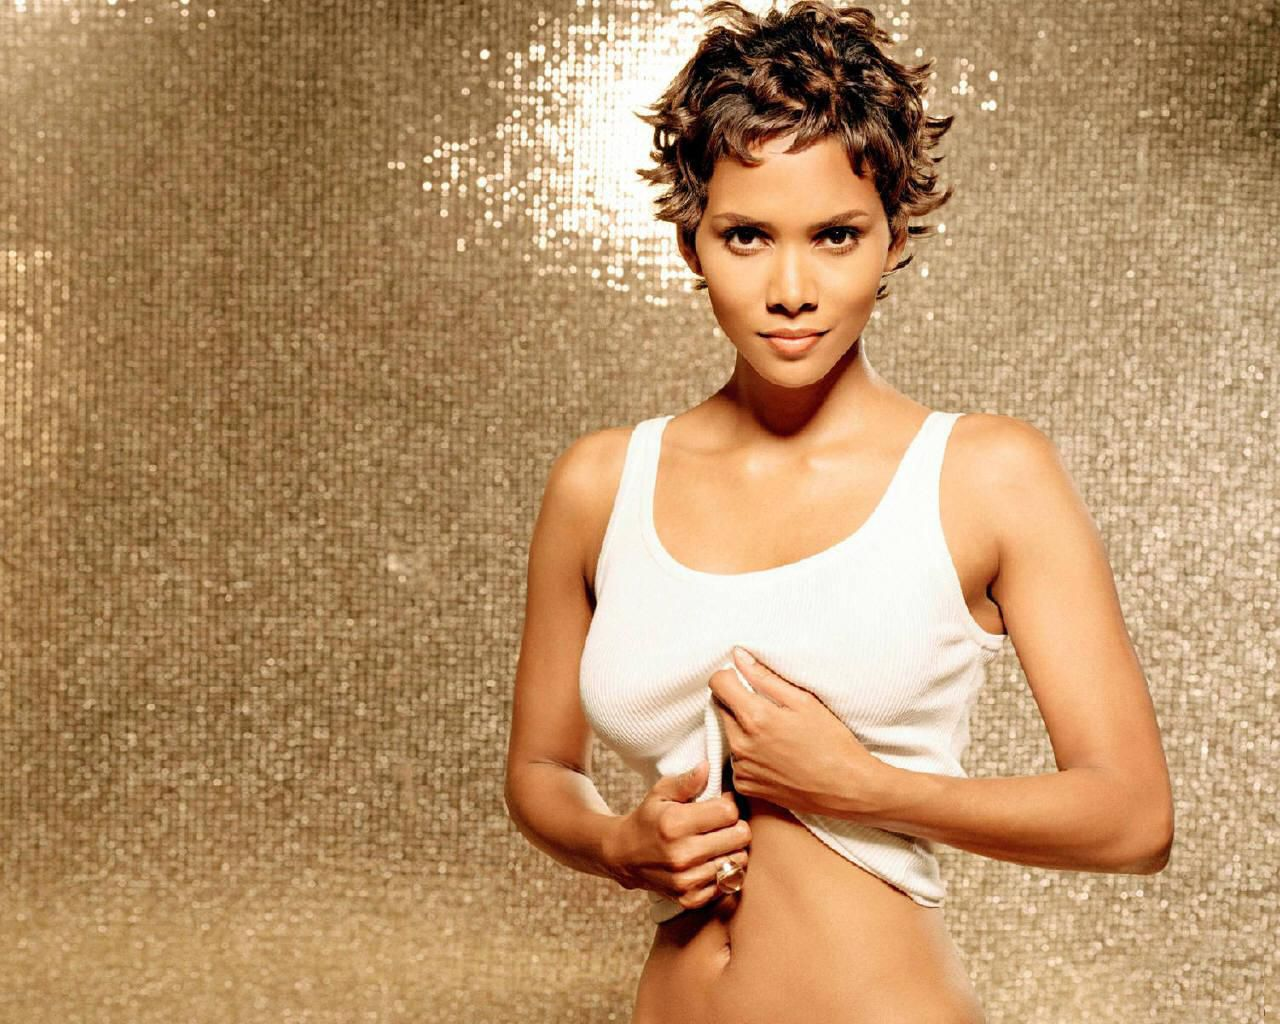 Meches Bambini ~ Halle berry pictures 15 halle berry pinterest halle and